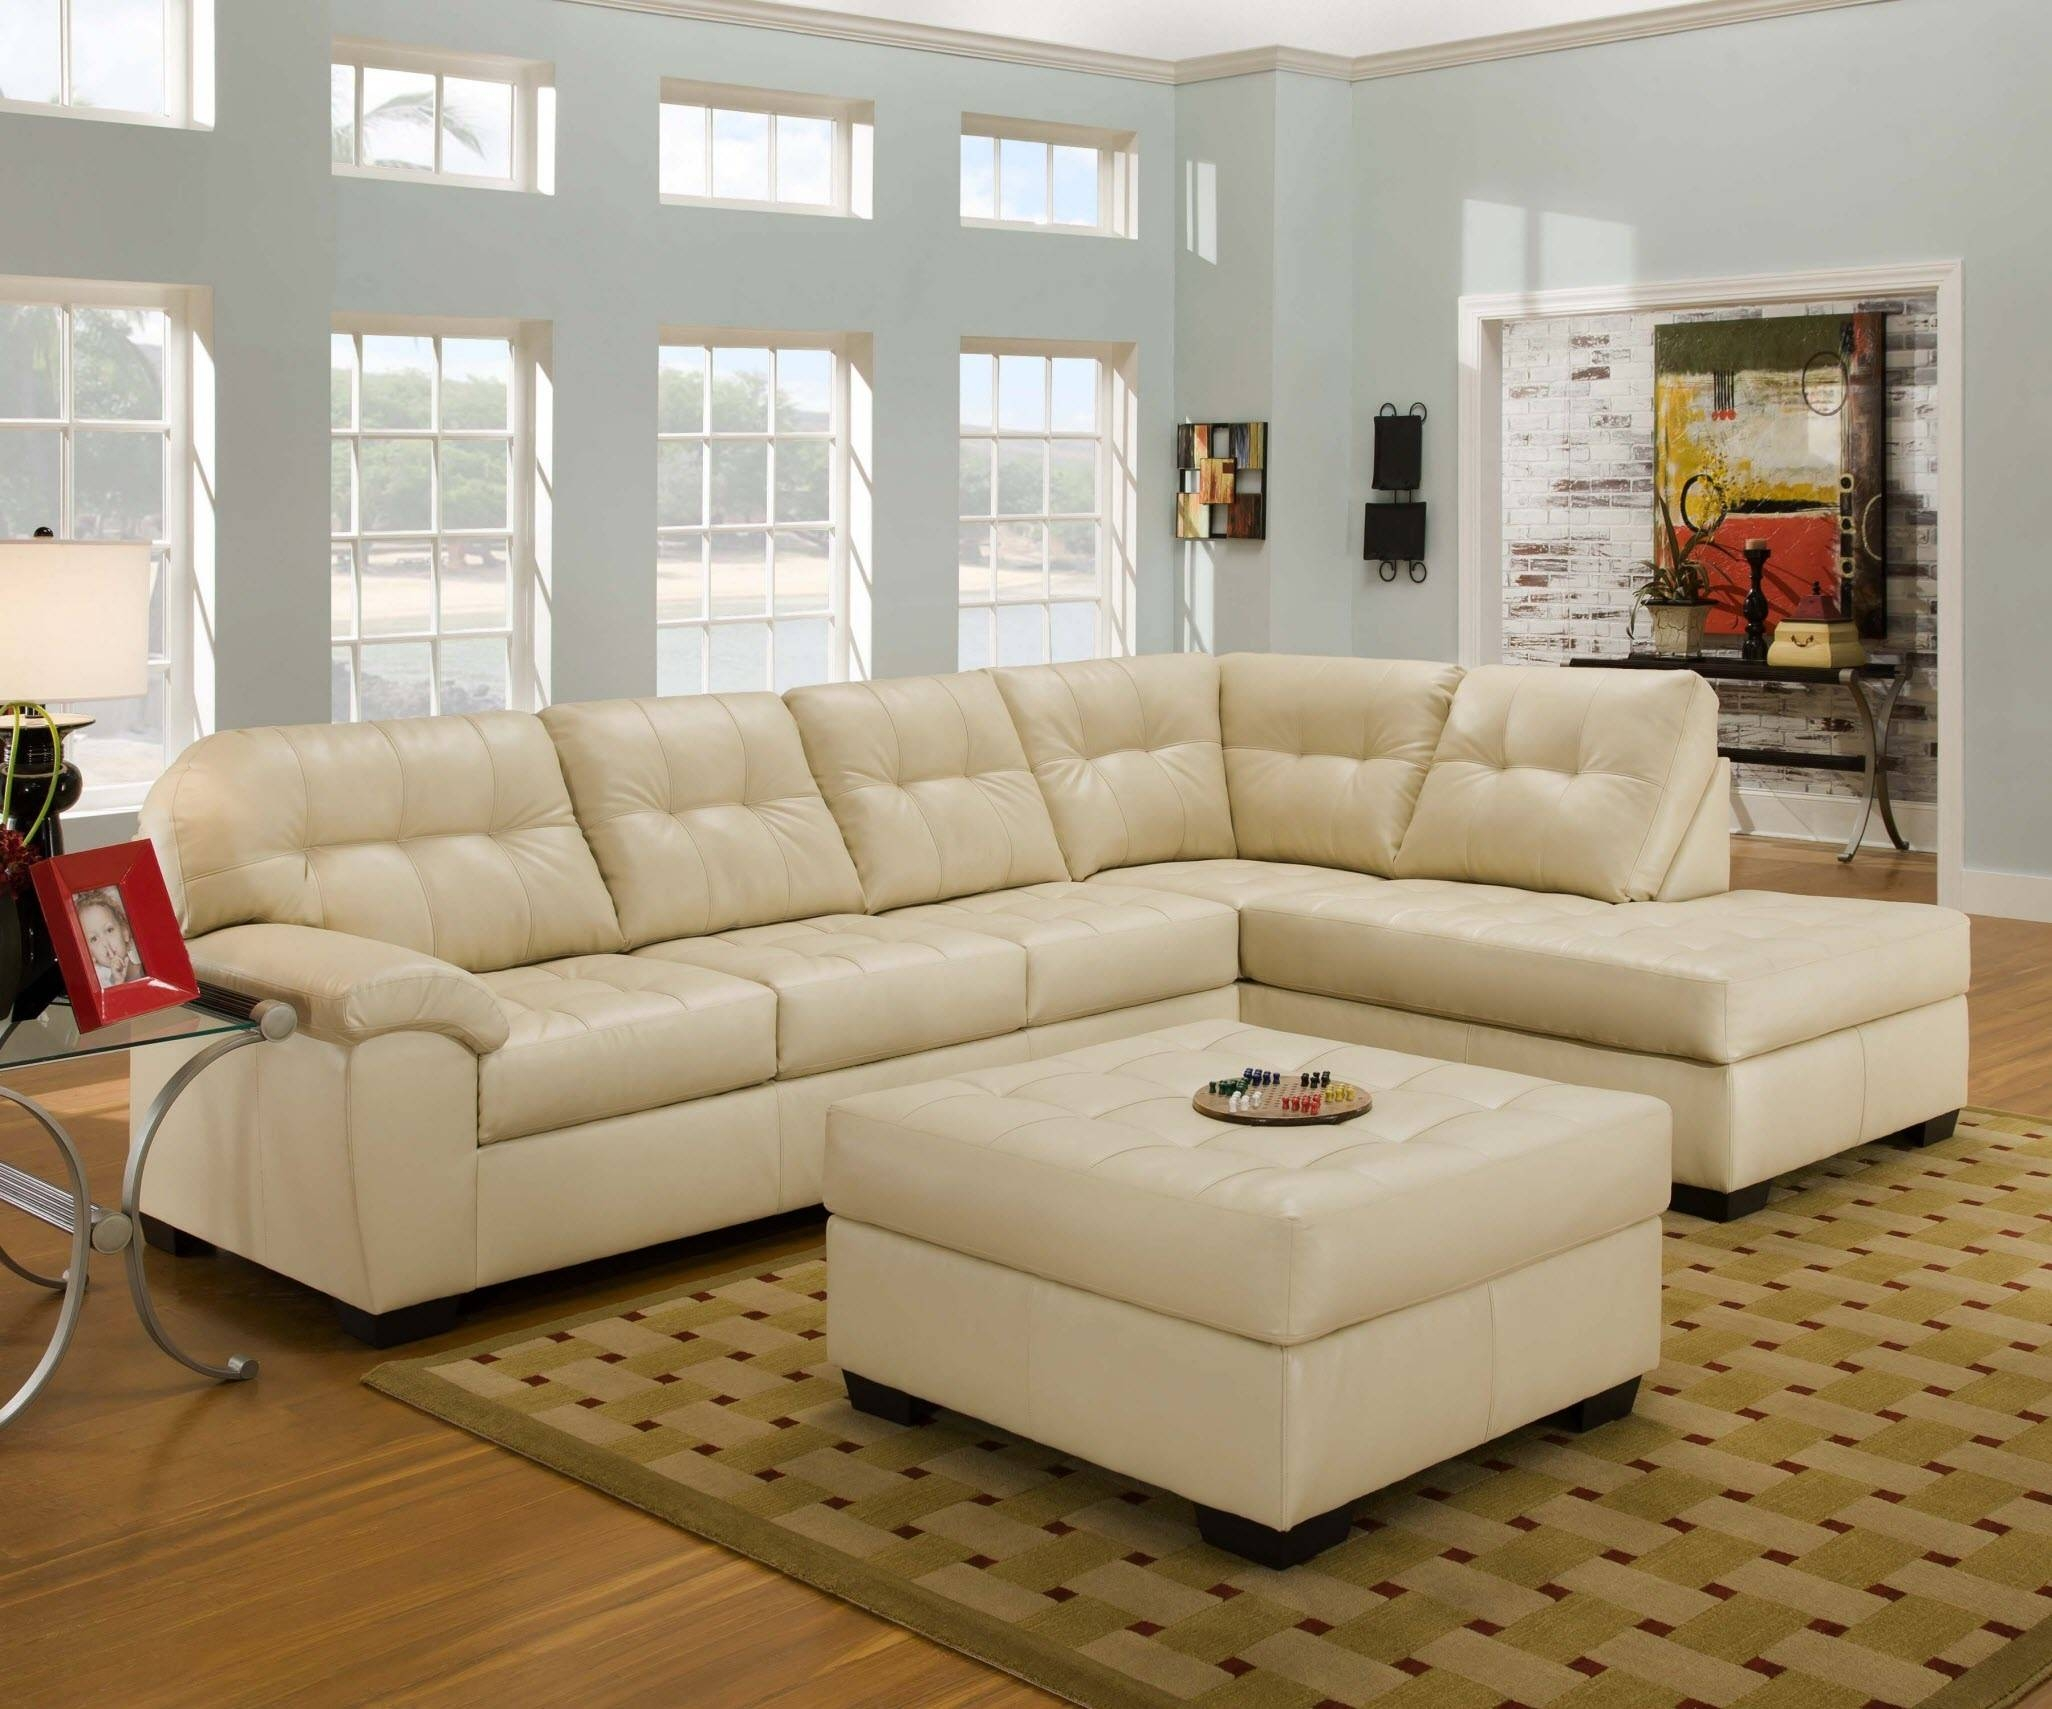 Sofa. Amazing Tufted Sectional With Chaise: Awesome-Tufted for Tufted Sectional Sofa With Chaise (Image 17 of 30)